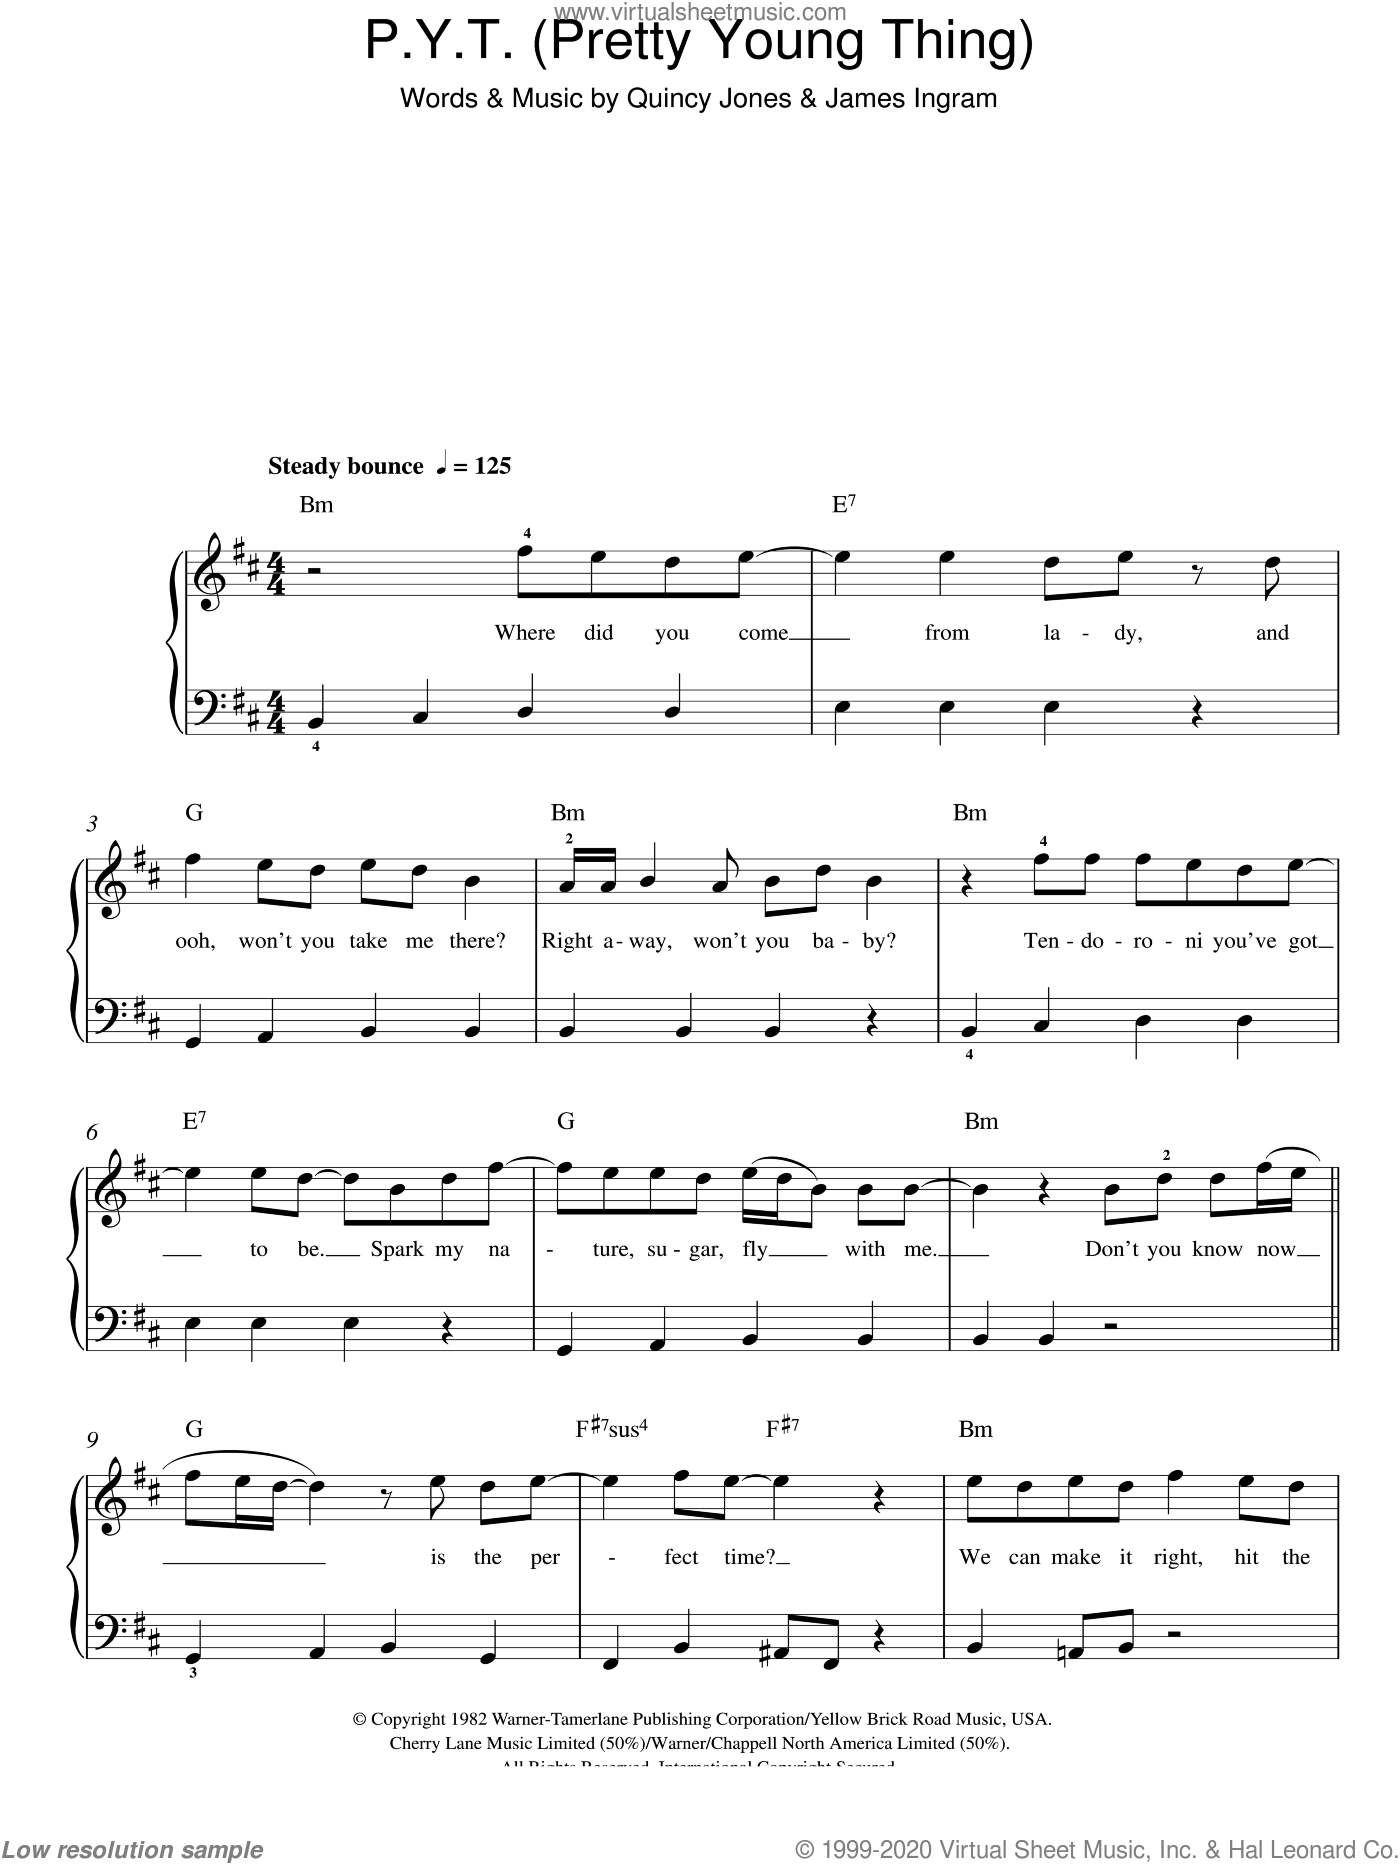 P.Y.T. (Pretty Young Thing) sheet music for piano solo by Michael Jackson, James Ingram and Quincy Jones, easy skill level